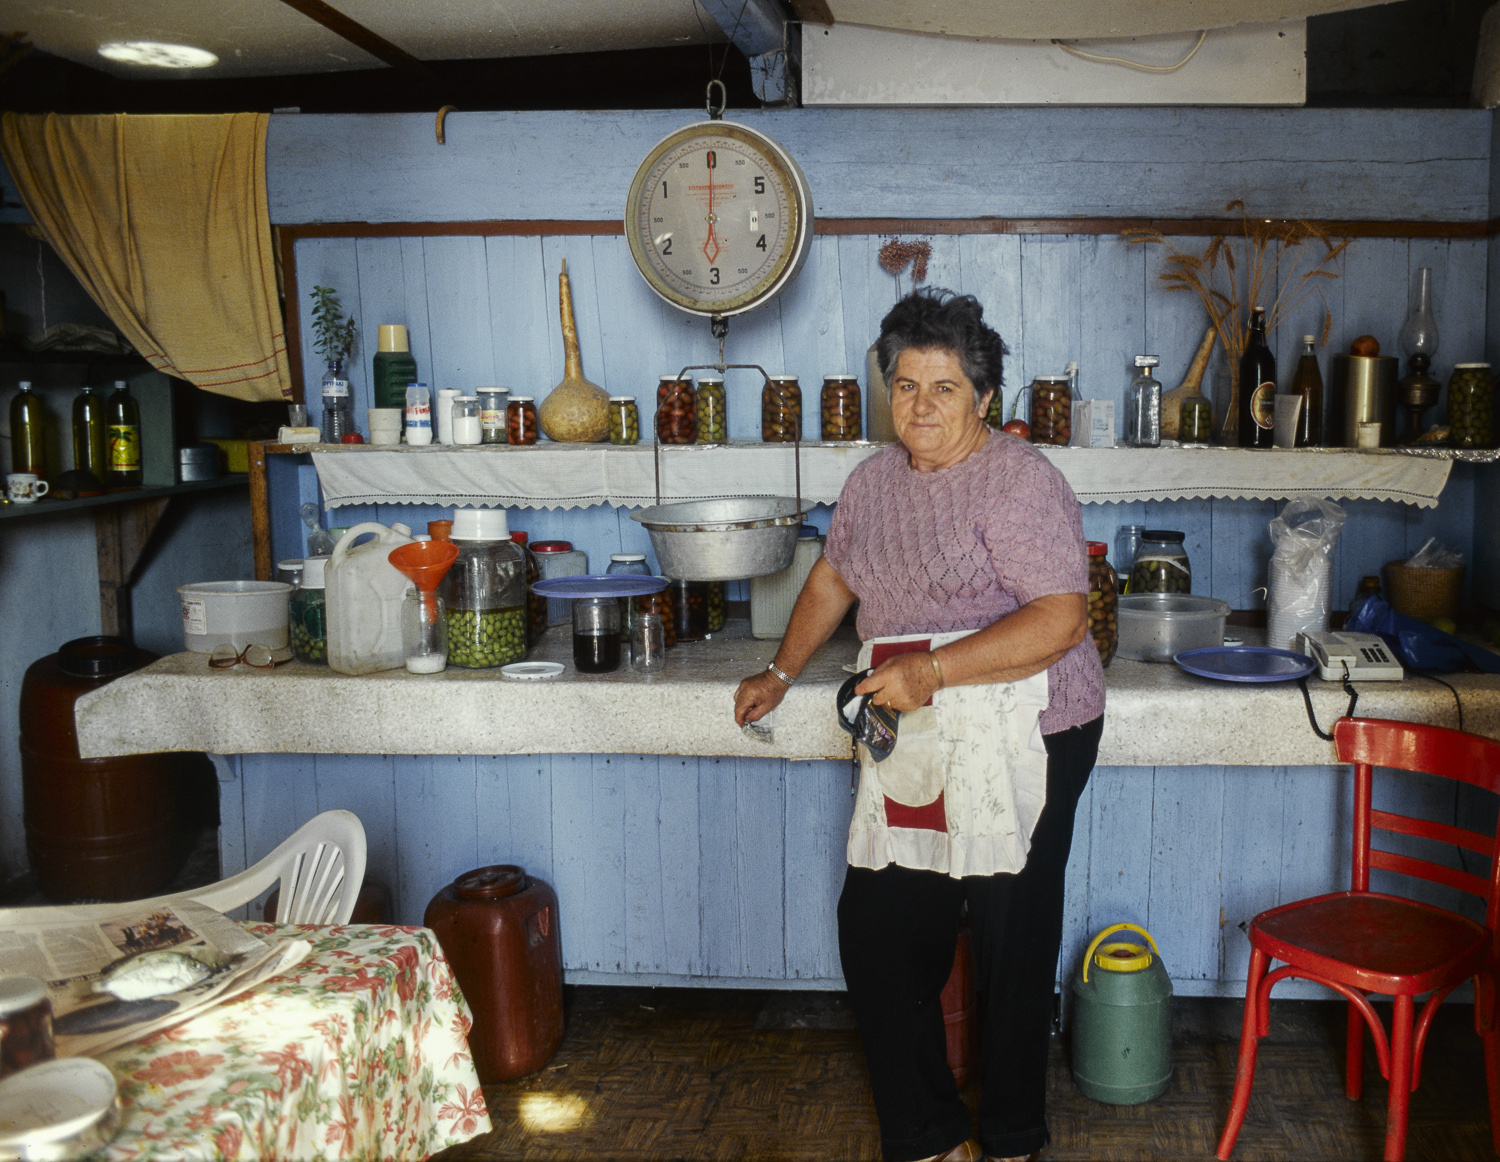 Kitchen - Astros, Greece, 1995